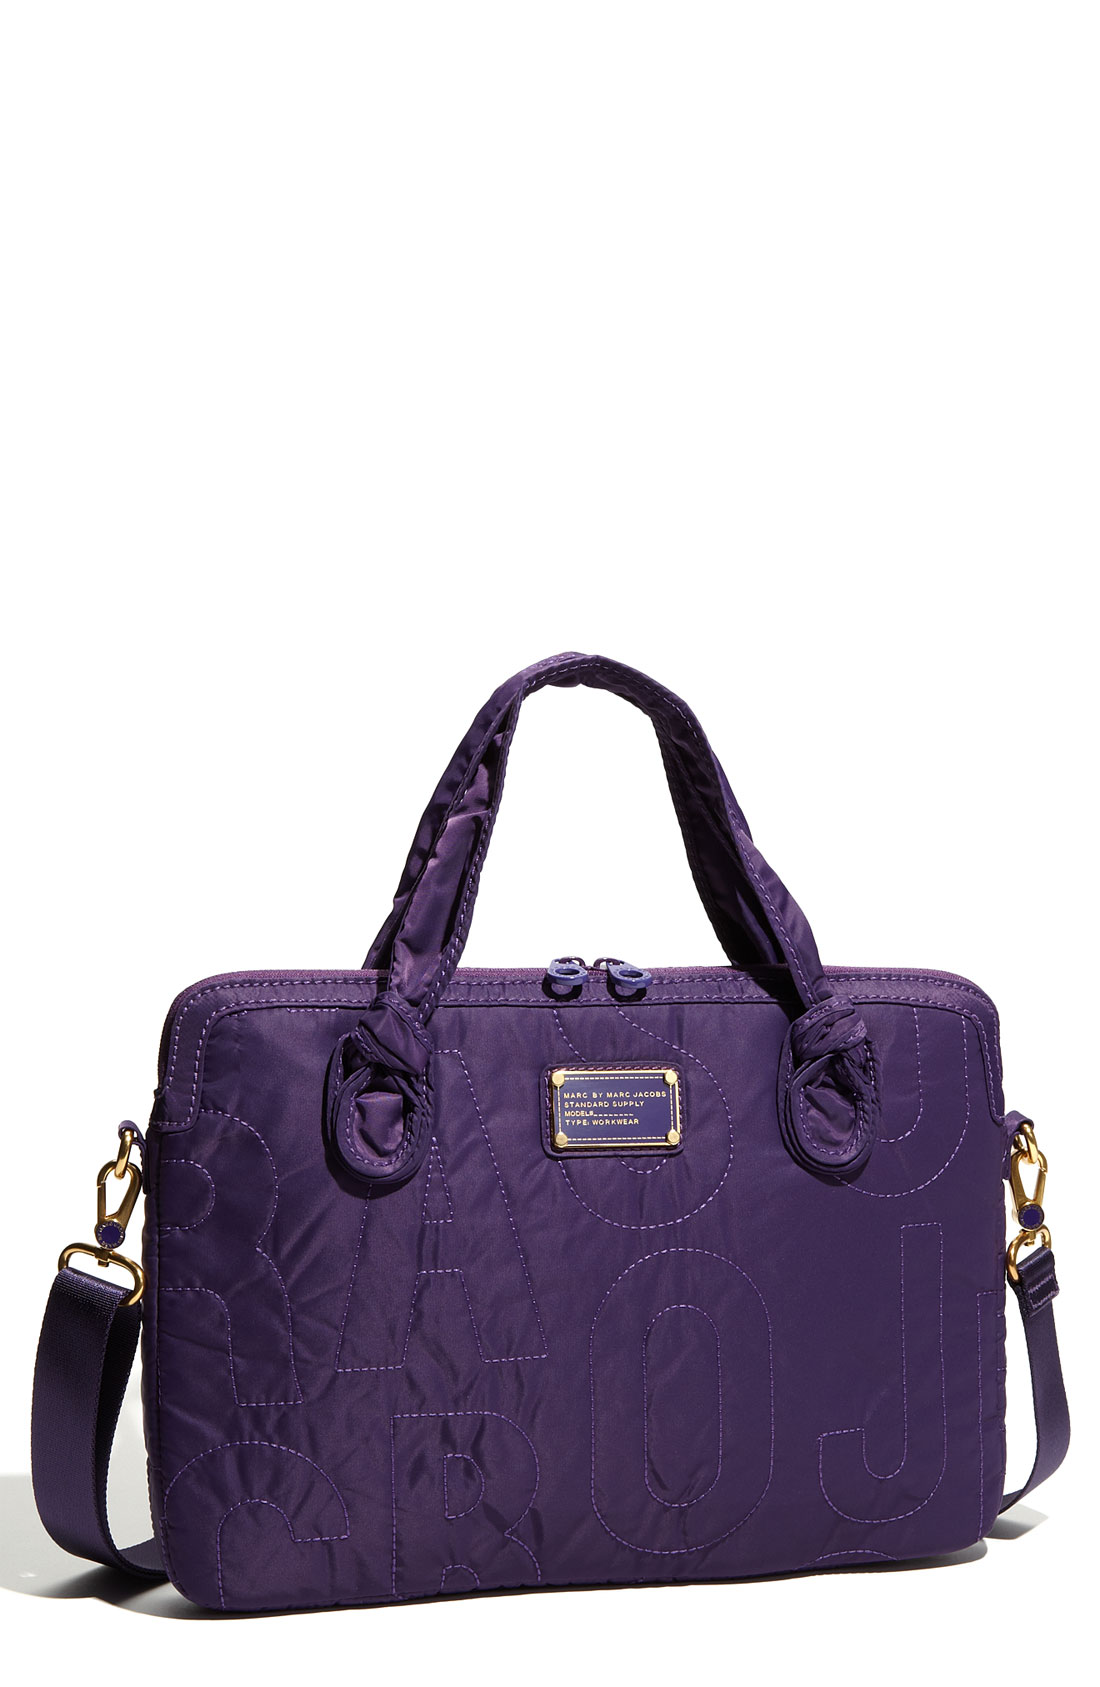 marc by marc jacobs pretty nylon 15 laptop commuter case in purple bright grape lyst. Black Bedroom Furniture Sets. Home Design Ideas